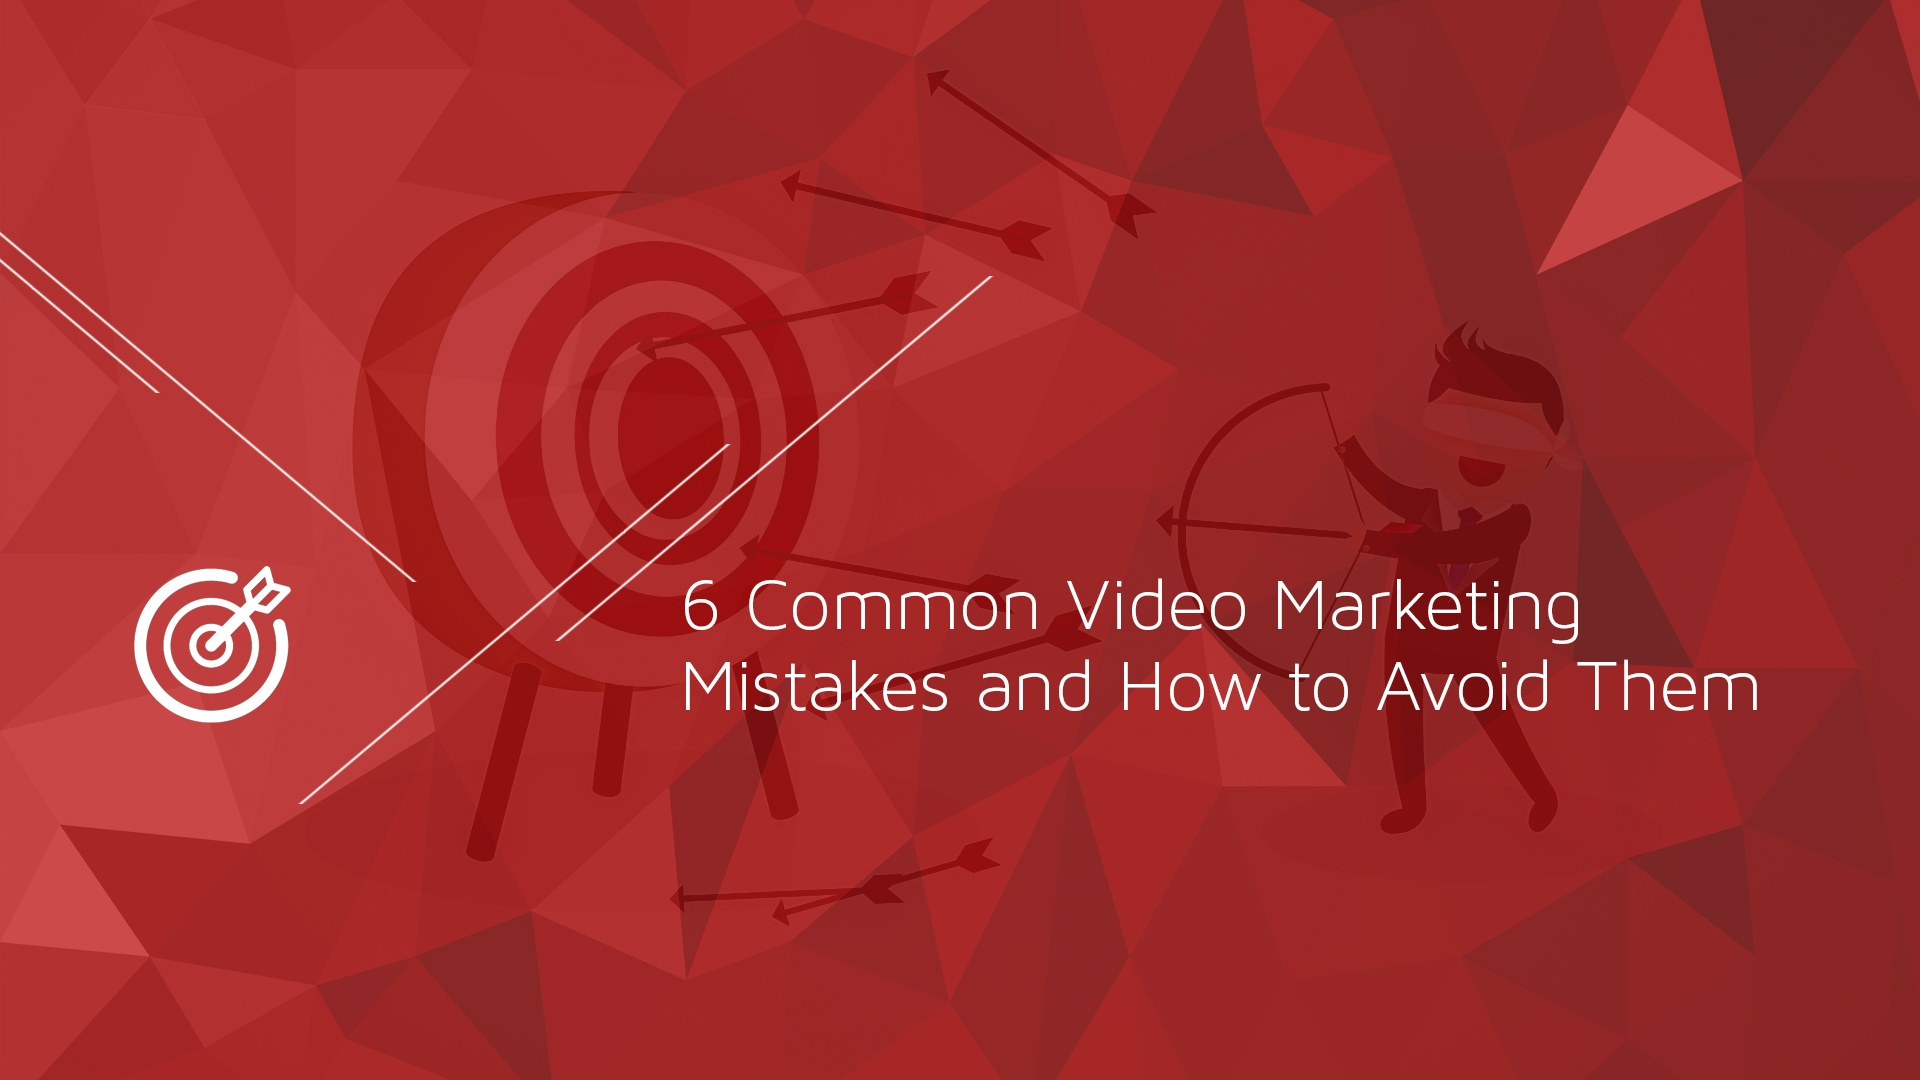 6 Common Video Marketing Mistakes and How to Avoid Them